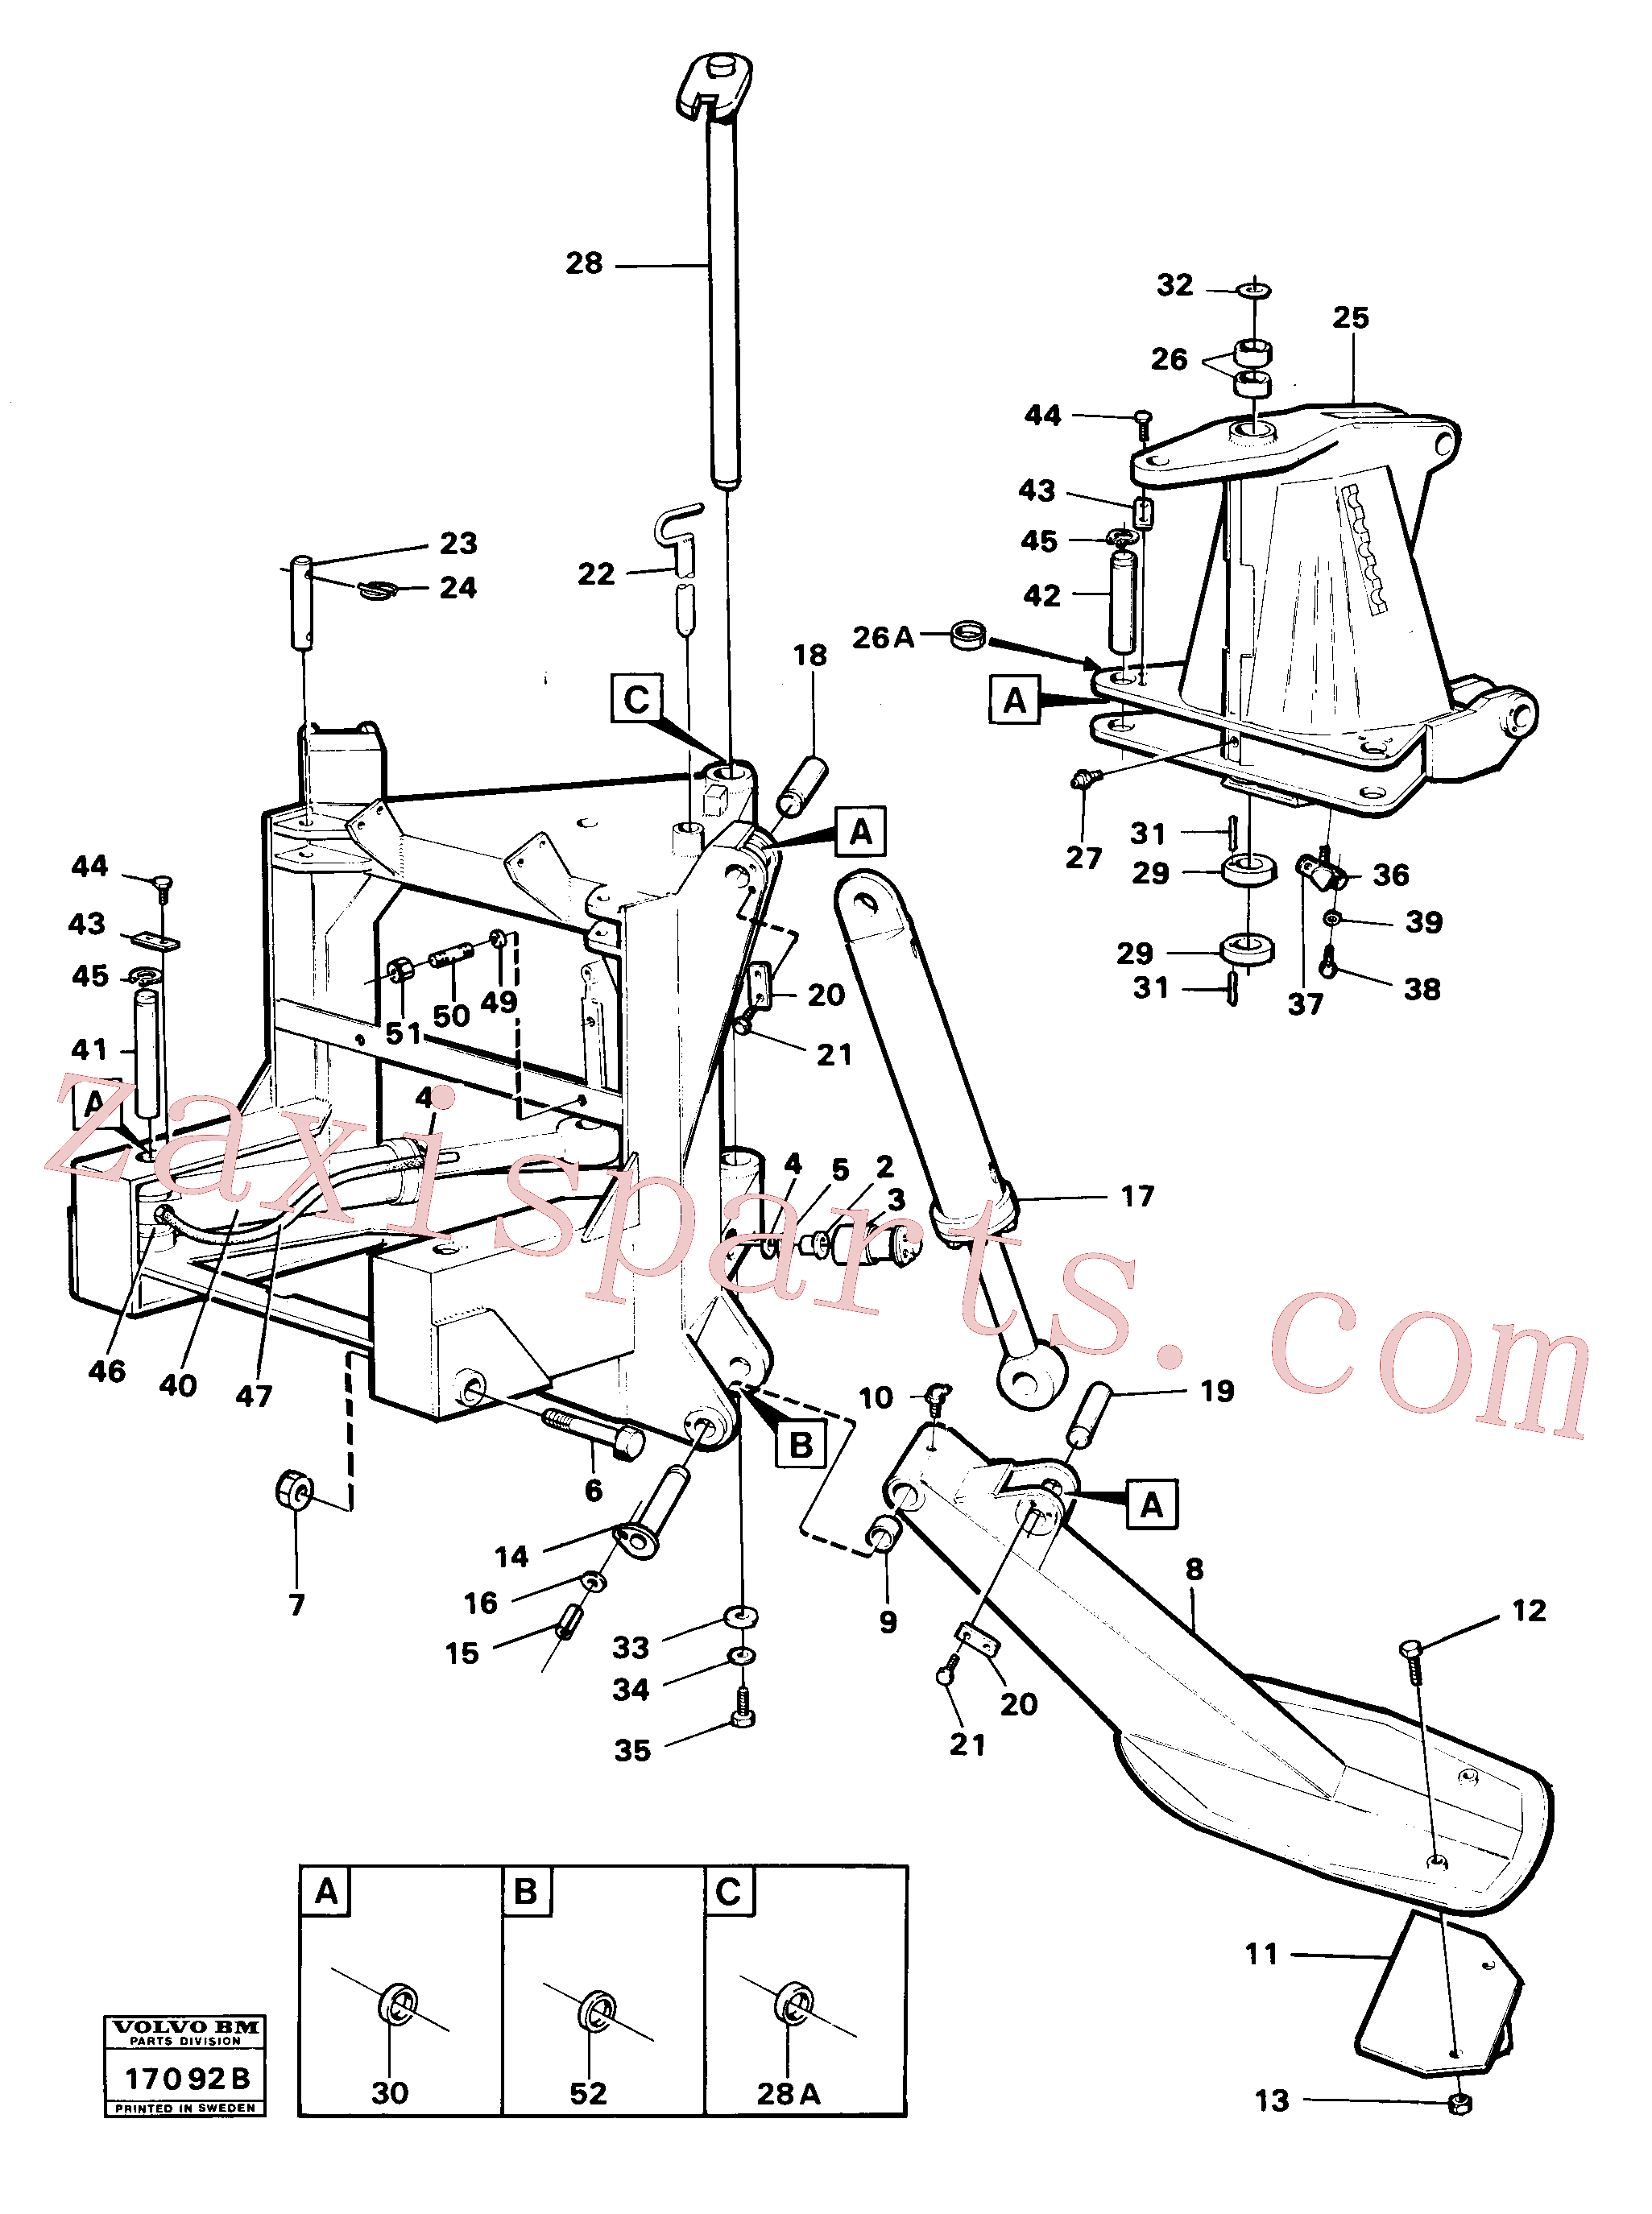 VOE961422 for Volvo Stand, supporting legs and centre frame(17092B assembly)